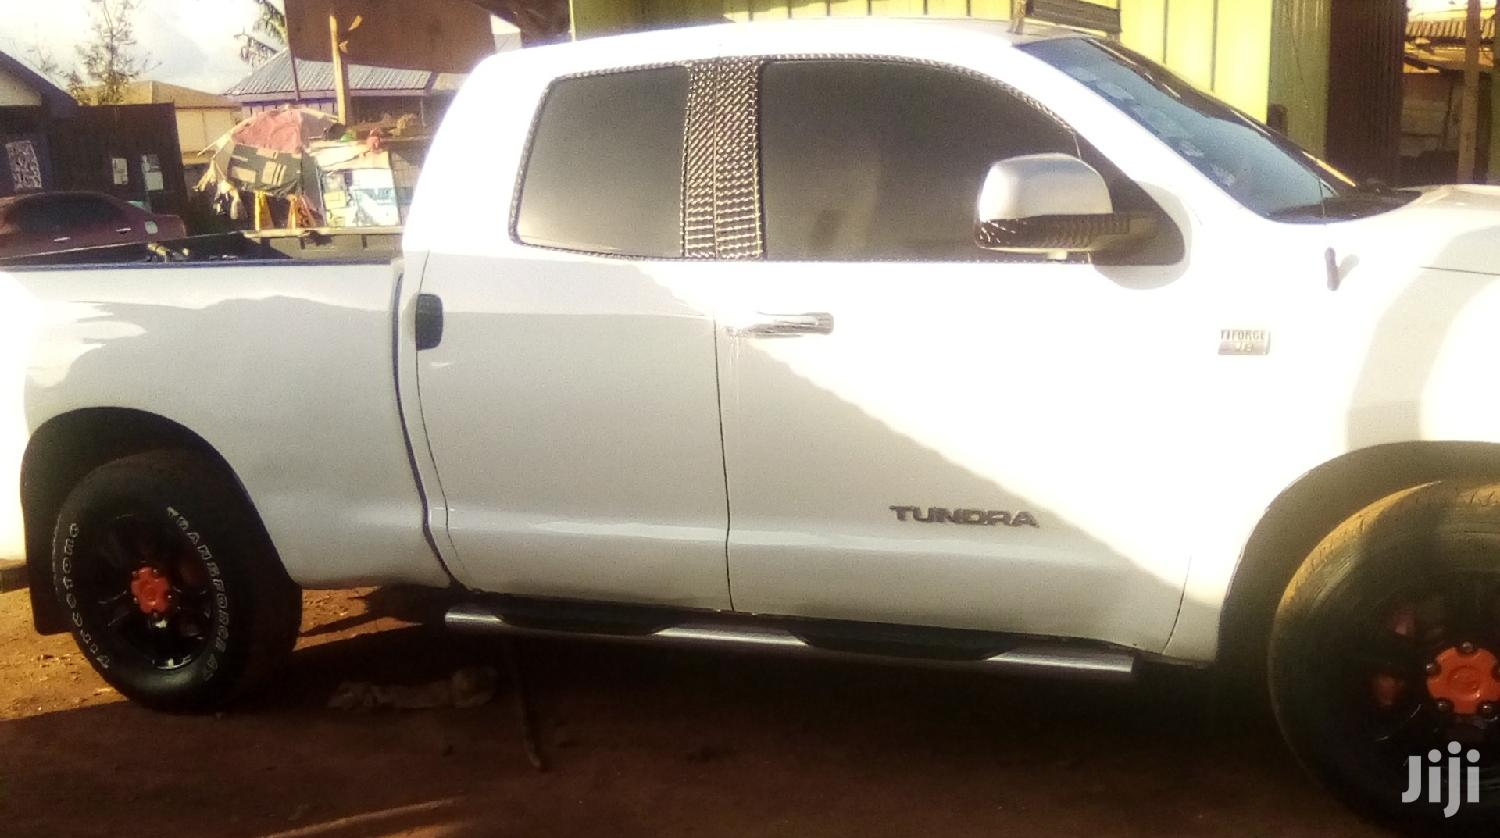 Toyota Tundra 2008 White | Cars for sale in Accra Metropolitan, Greater Accra, Ghana